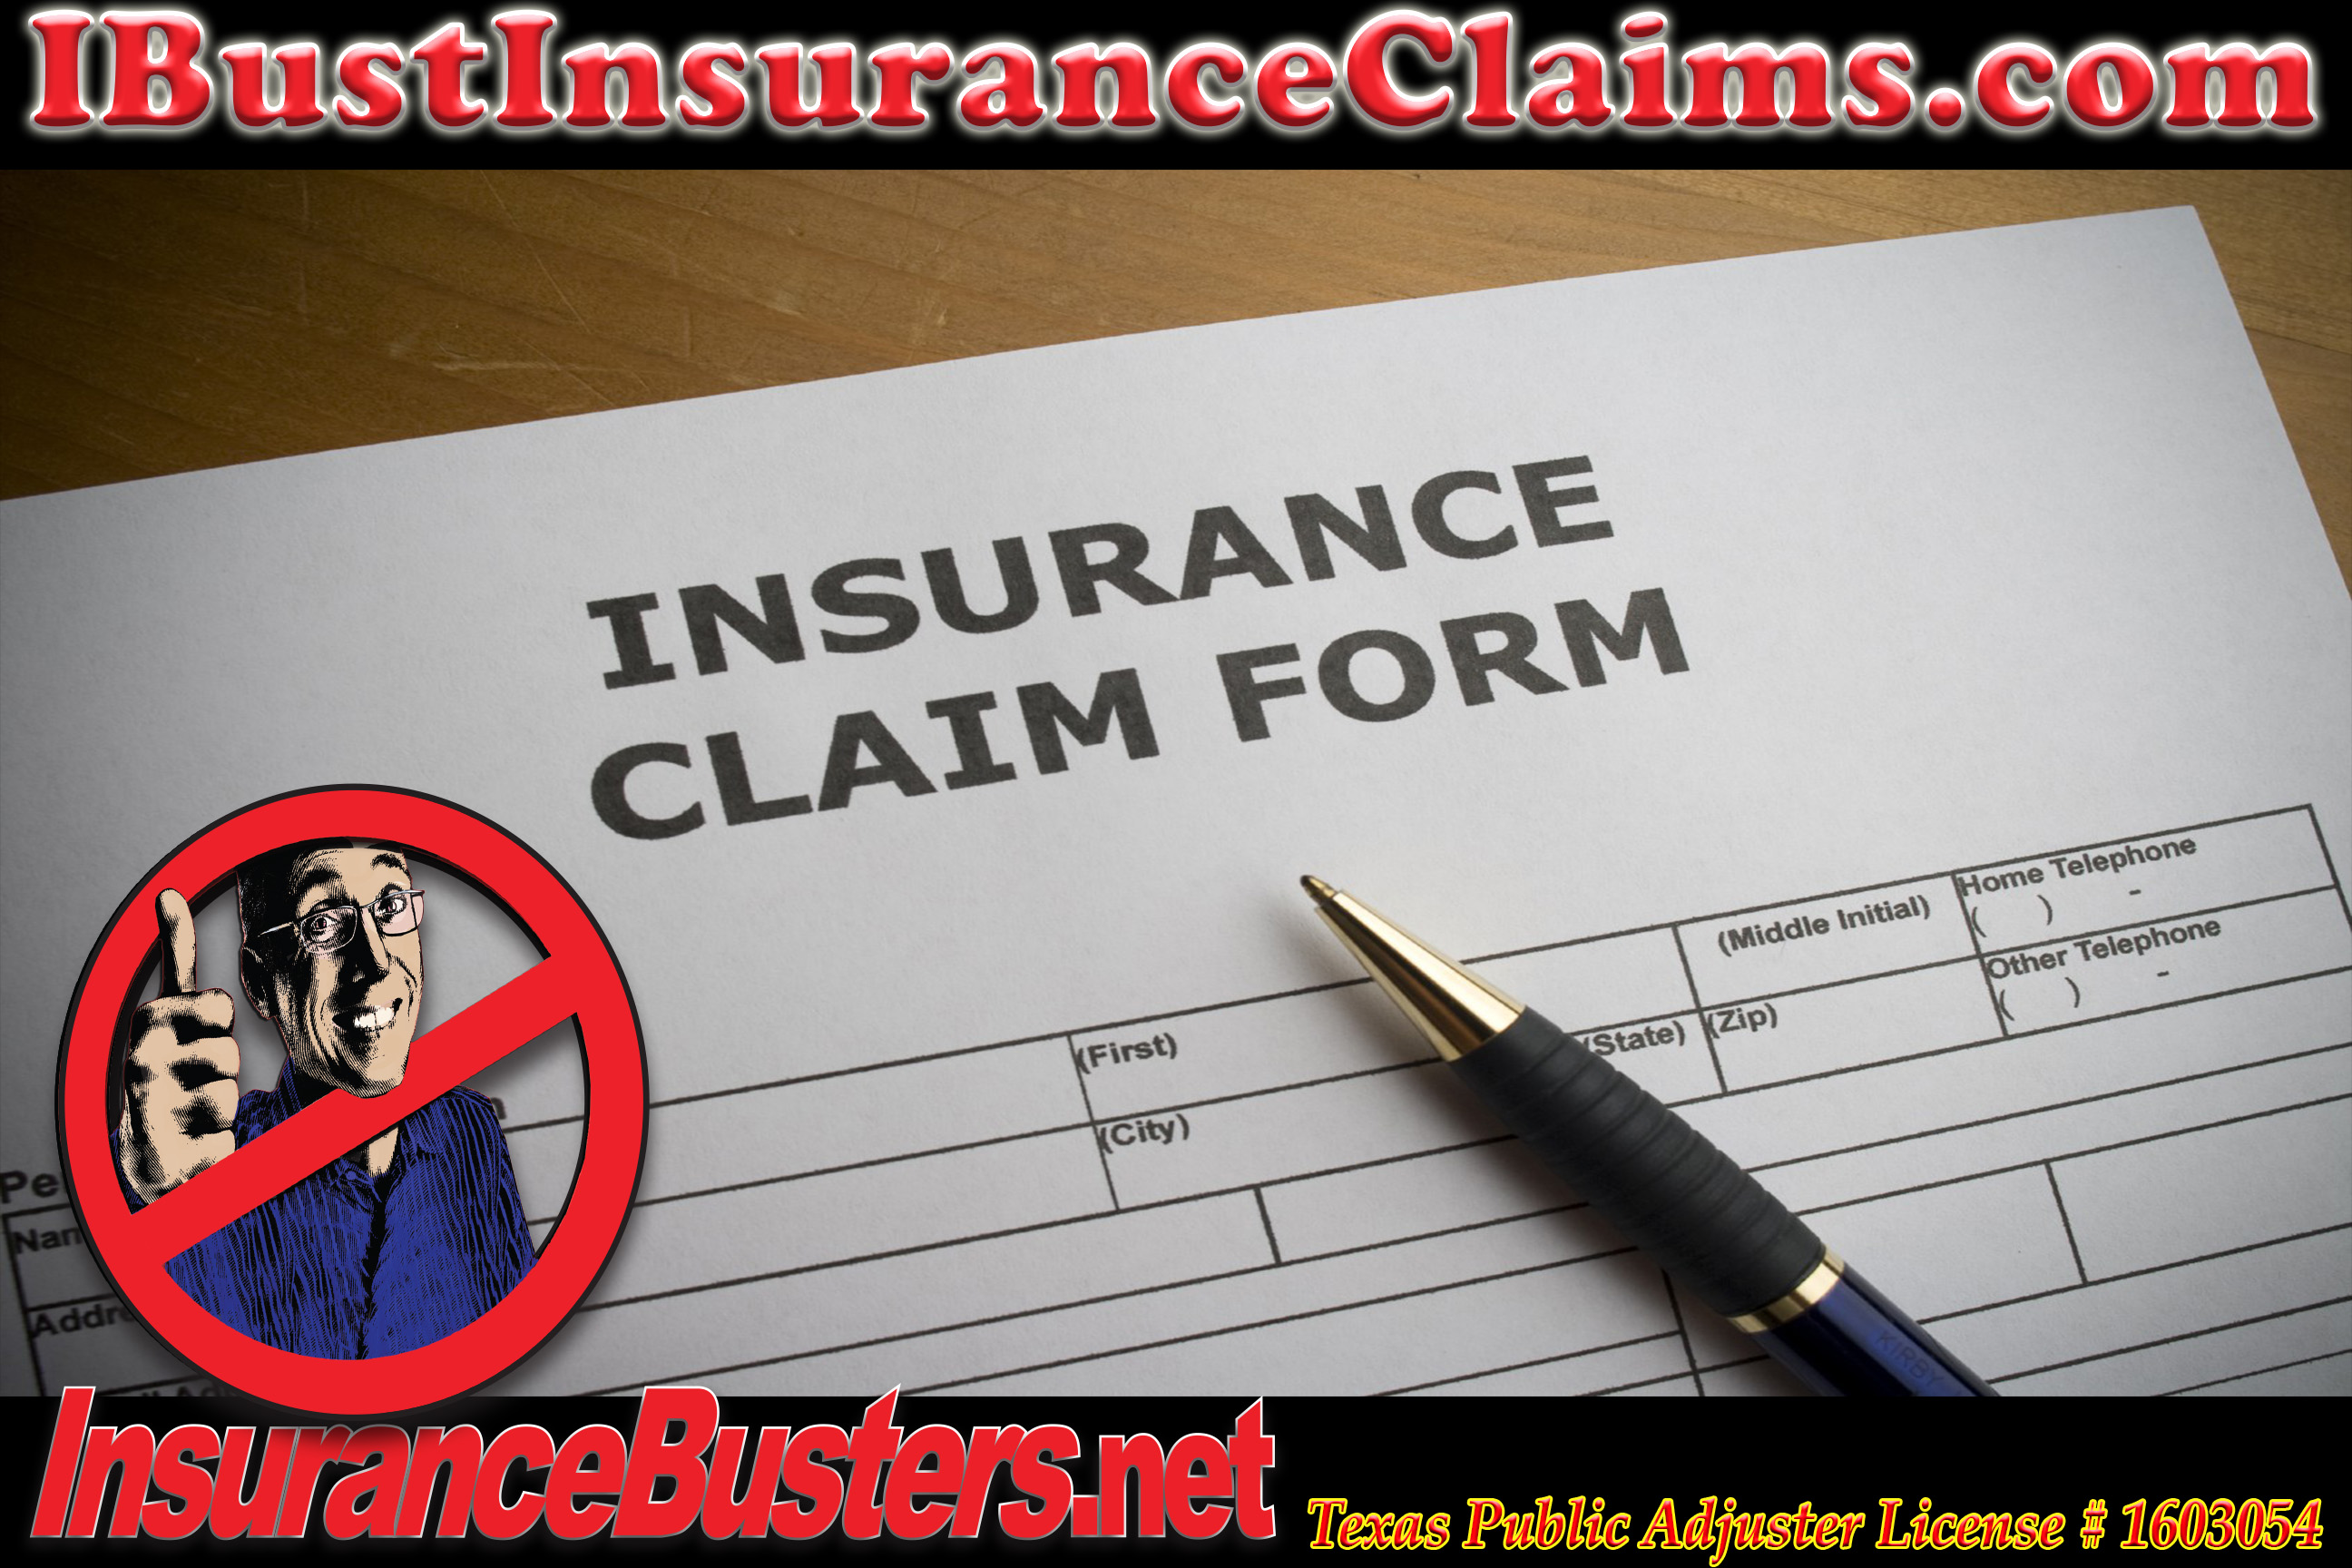 Tornadoes, Hail, Wind... Having Problems with Your Insurance Claim? Free Claim Review